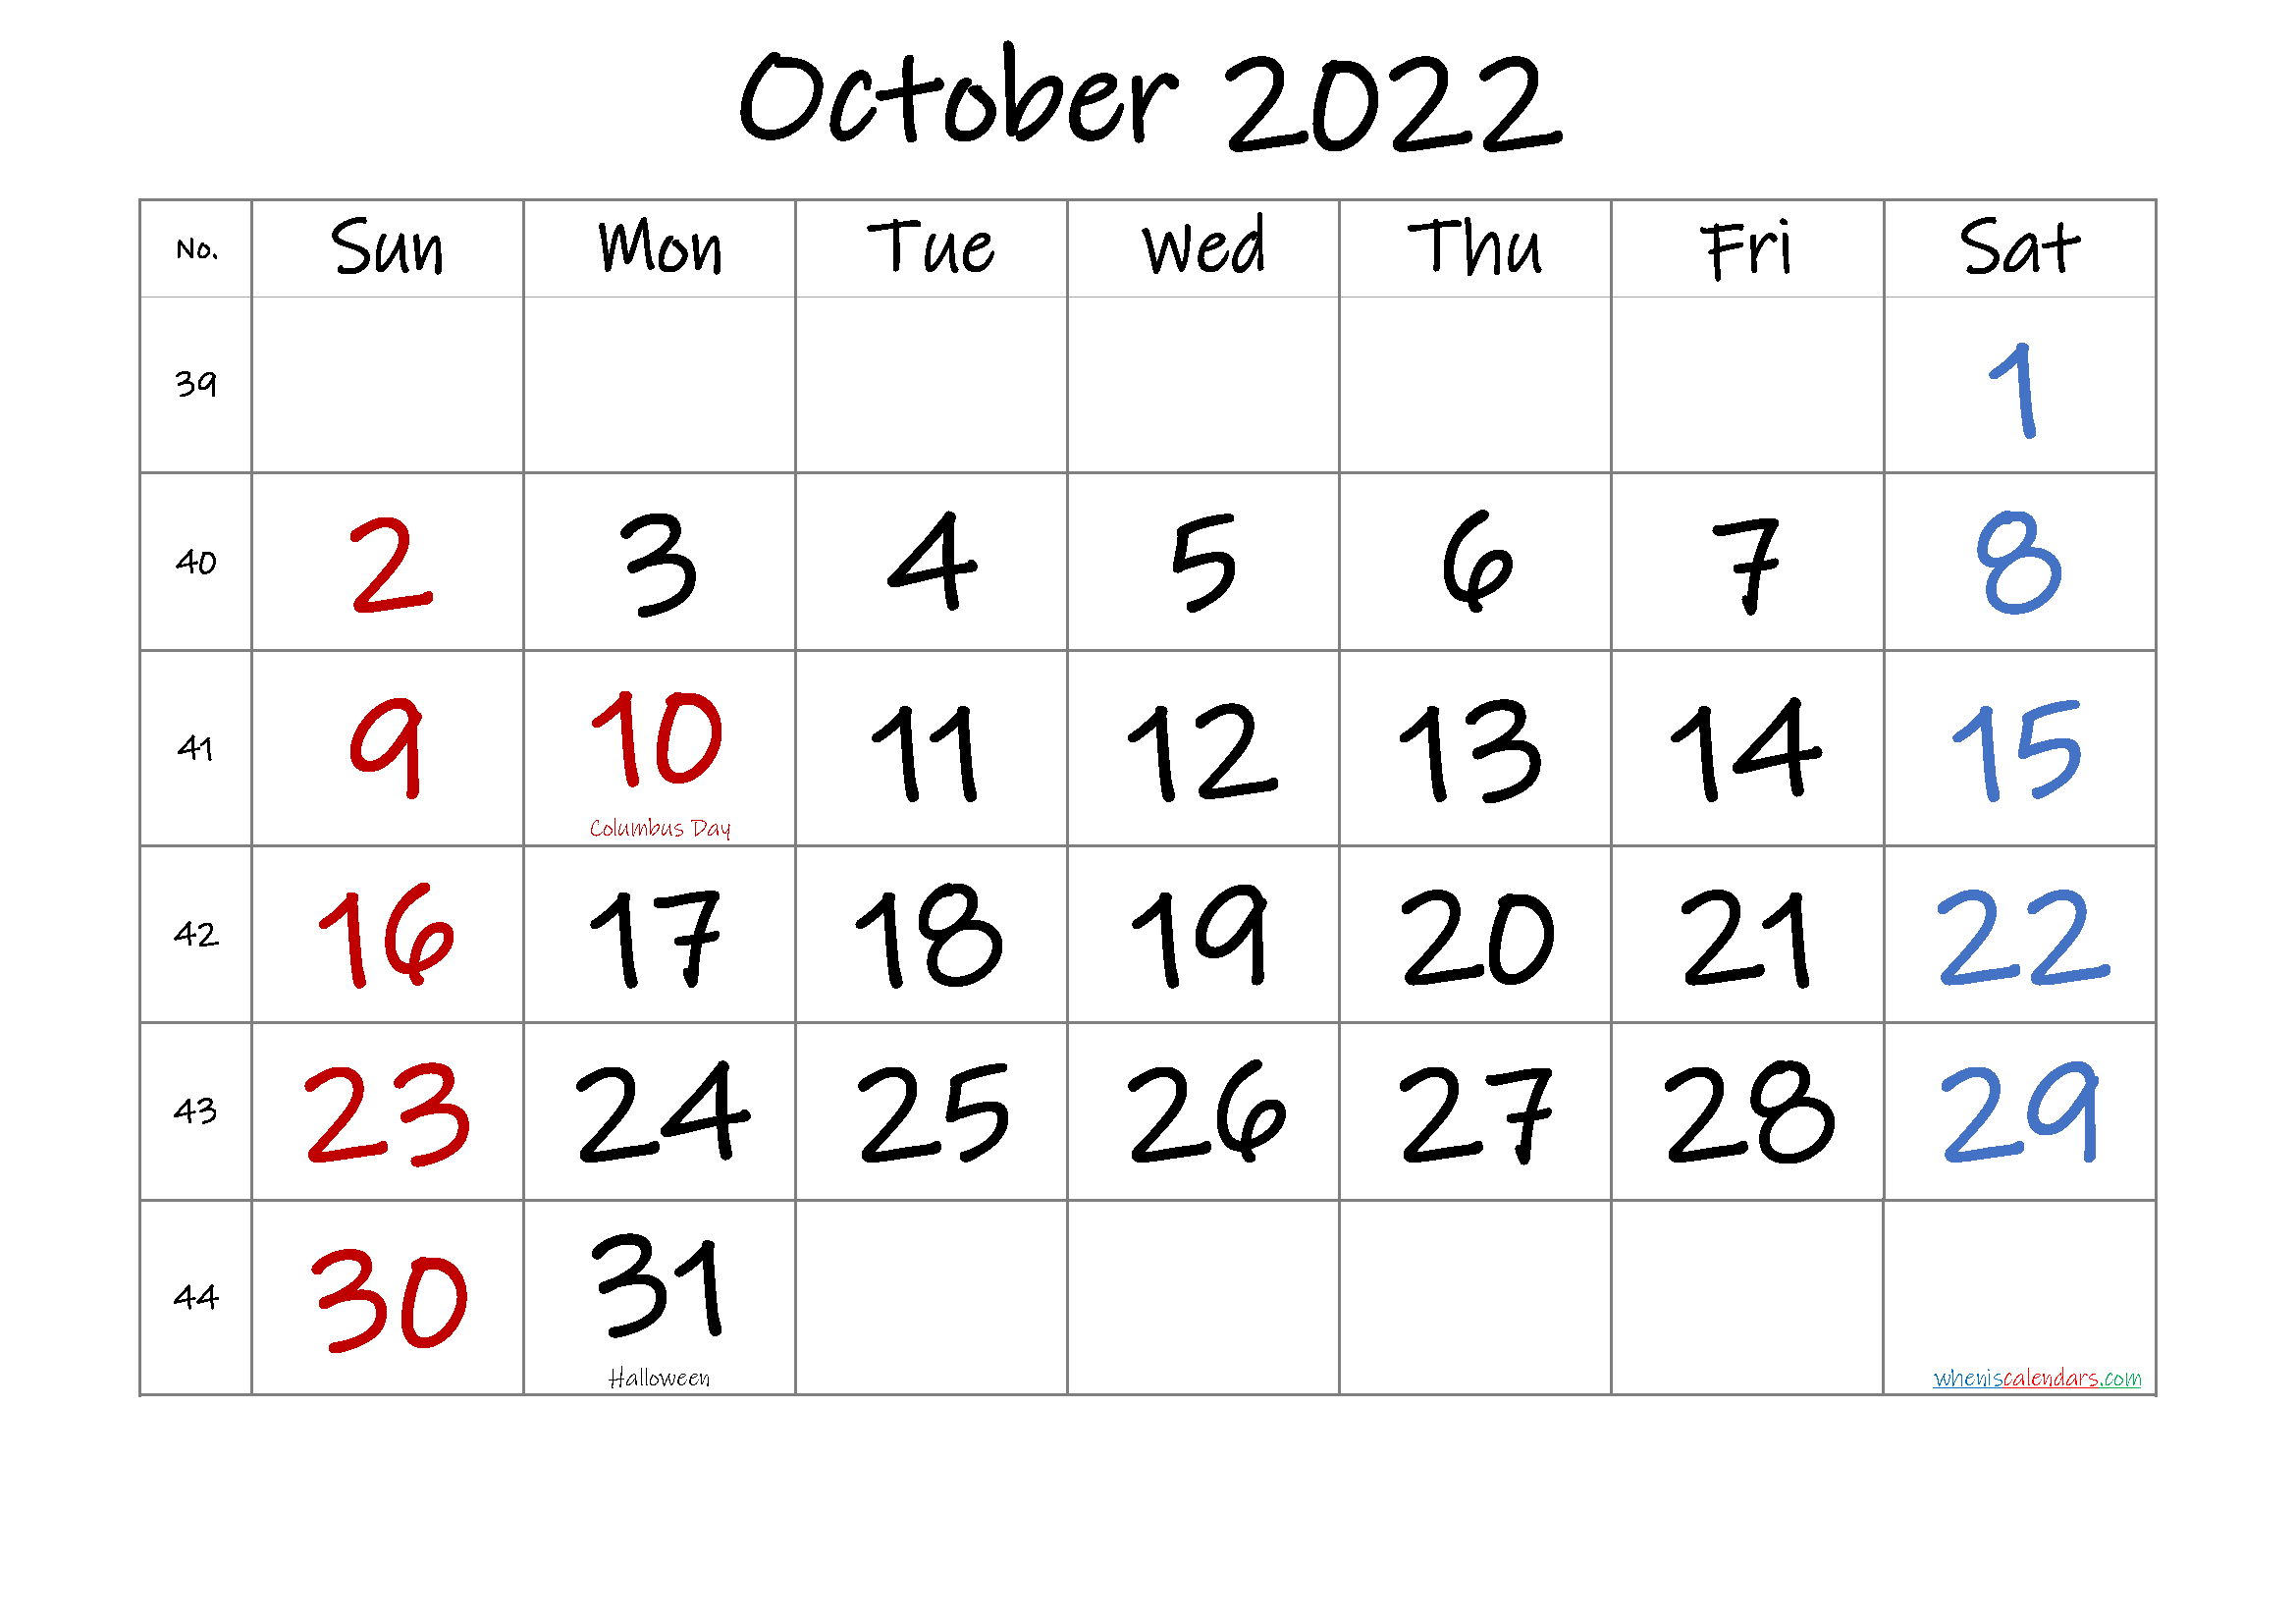 October 2022 Printable Calendar with Holidays